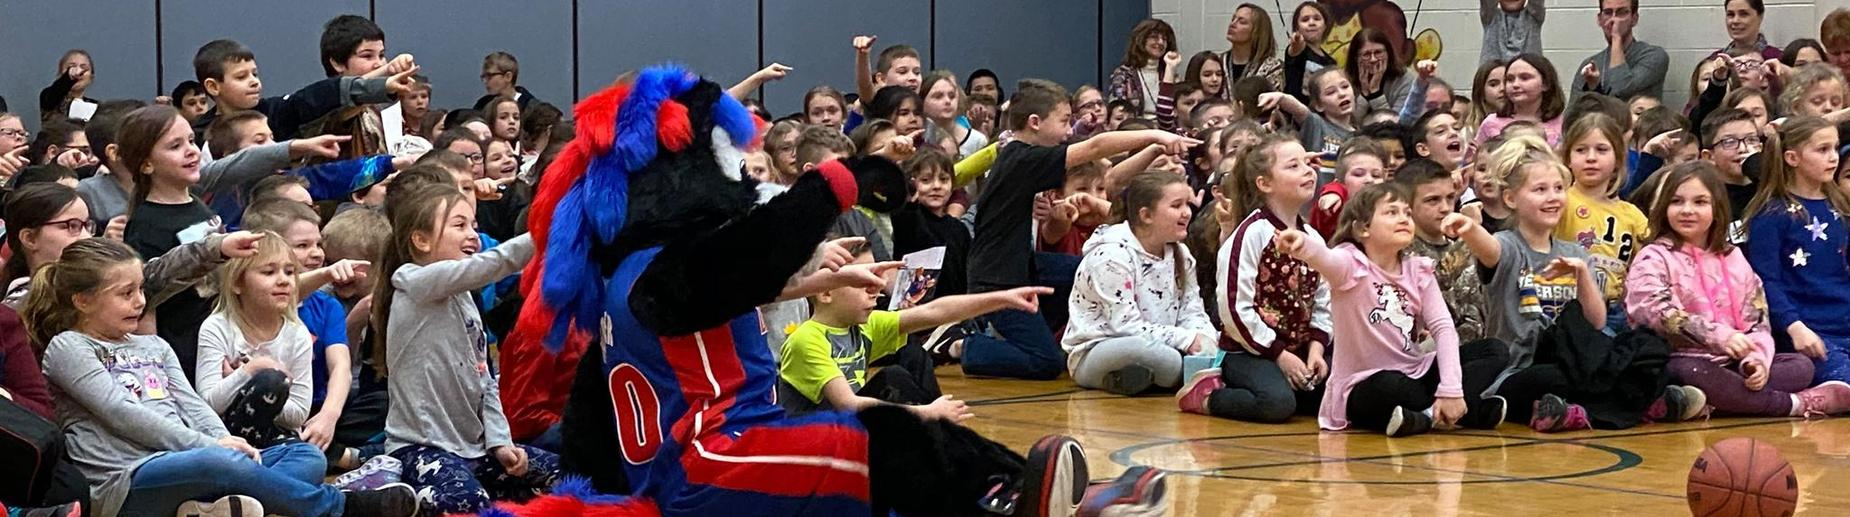 North Elementary Assembly